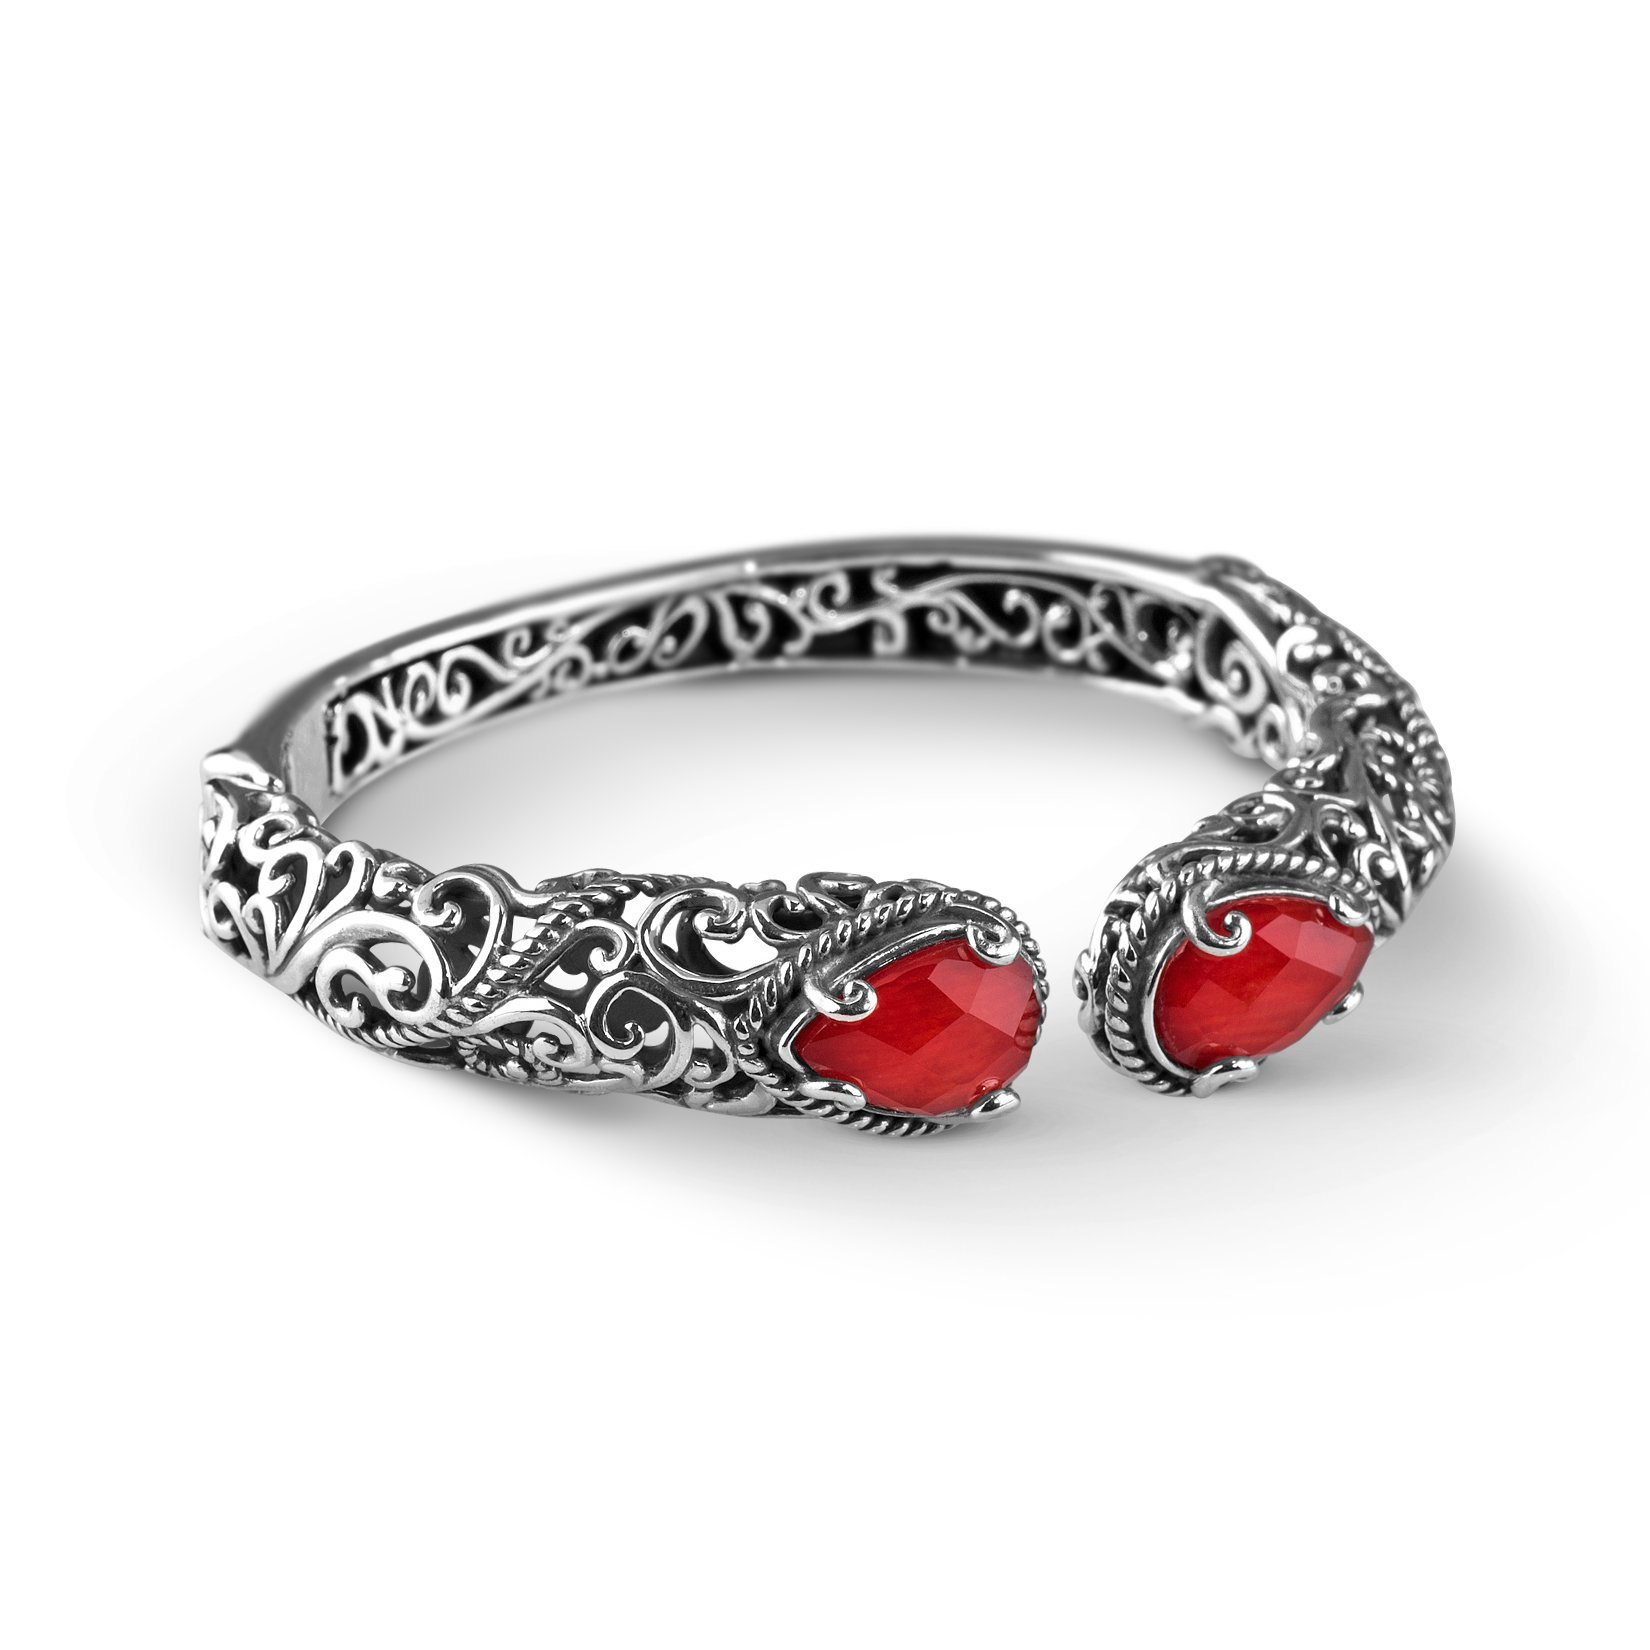 Carolyn Pollack Signature Sterling Silver Red Coral Doublet Hinged Cuff Bracelet, Small